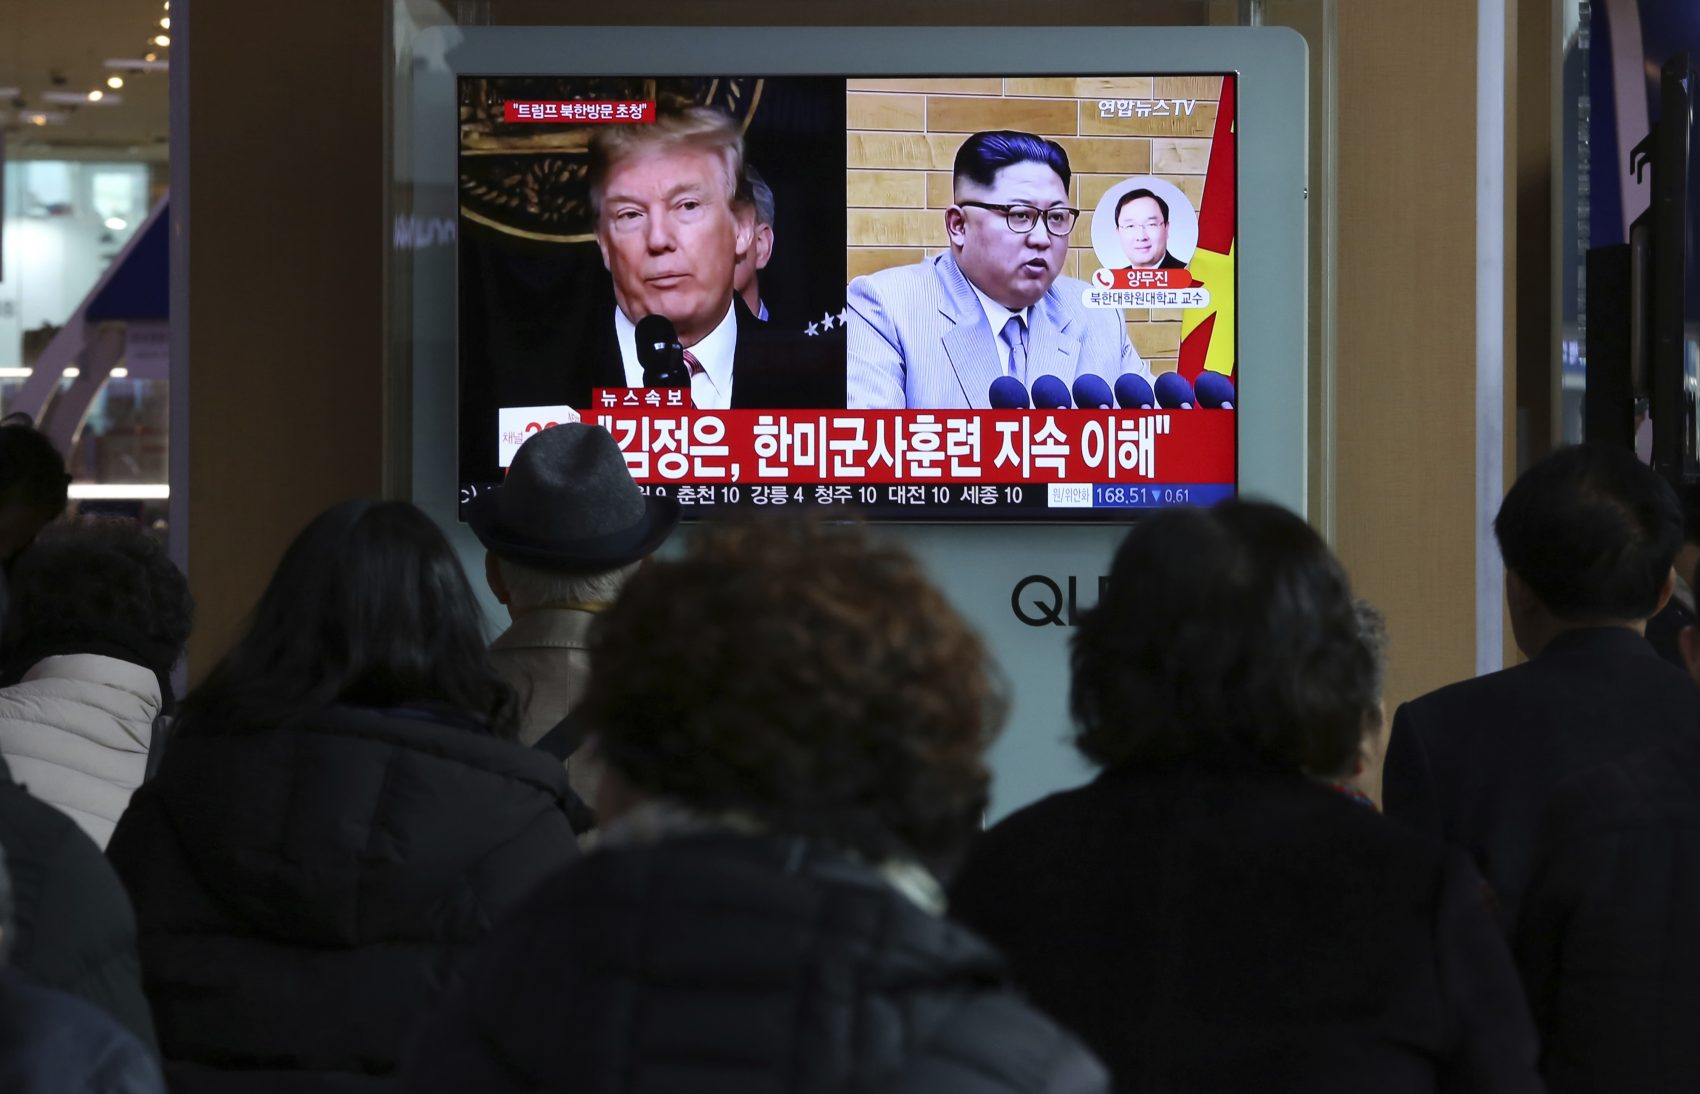 """People watch a TV screen showing North Korean leader Kim Jong Un and U.S. President Donald Trump, left, at the Seoul Railway Station in Seoul, South Korea, Friday, March 9, 2018. After months of trading insults and threats of nuclear annihilation, Trump agreed to meet with North Korean leader Kim Jung Un by the end of May to negotiate an end to Pyongyang's nuclear weapons program, South Korean and U.S. officials said Thursday. No sitting American president has ever met with a North Korea leader. The signs read: """" Kim Jong Un understands that the routine joint military exercises between the South Korean and the United States must continue."""" (Ahn Young-joon/AP)"""